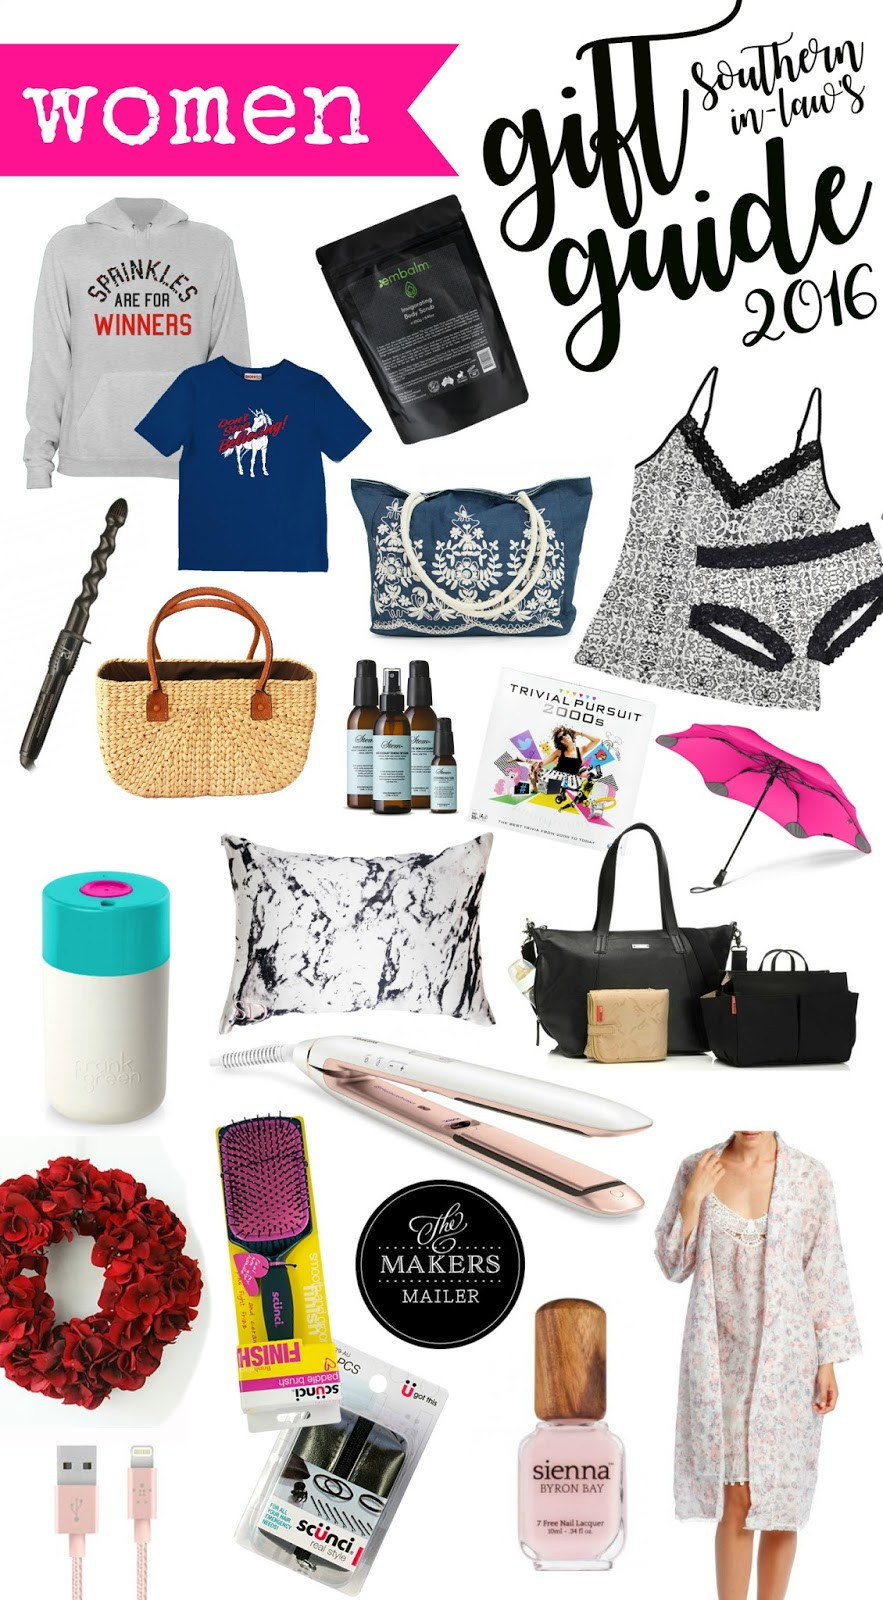 Best ideas about Girlfriend Gift Ideas Christmas . Save or Pin Southern In Law 2016 Women s Christmas Gift Guide Now.